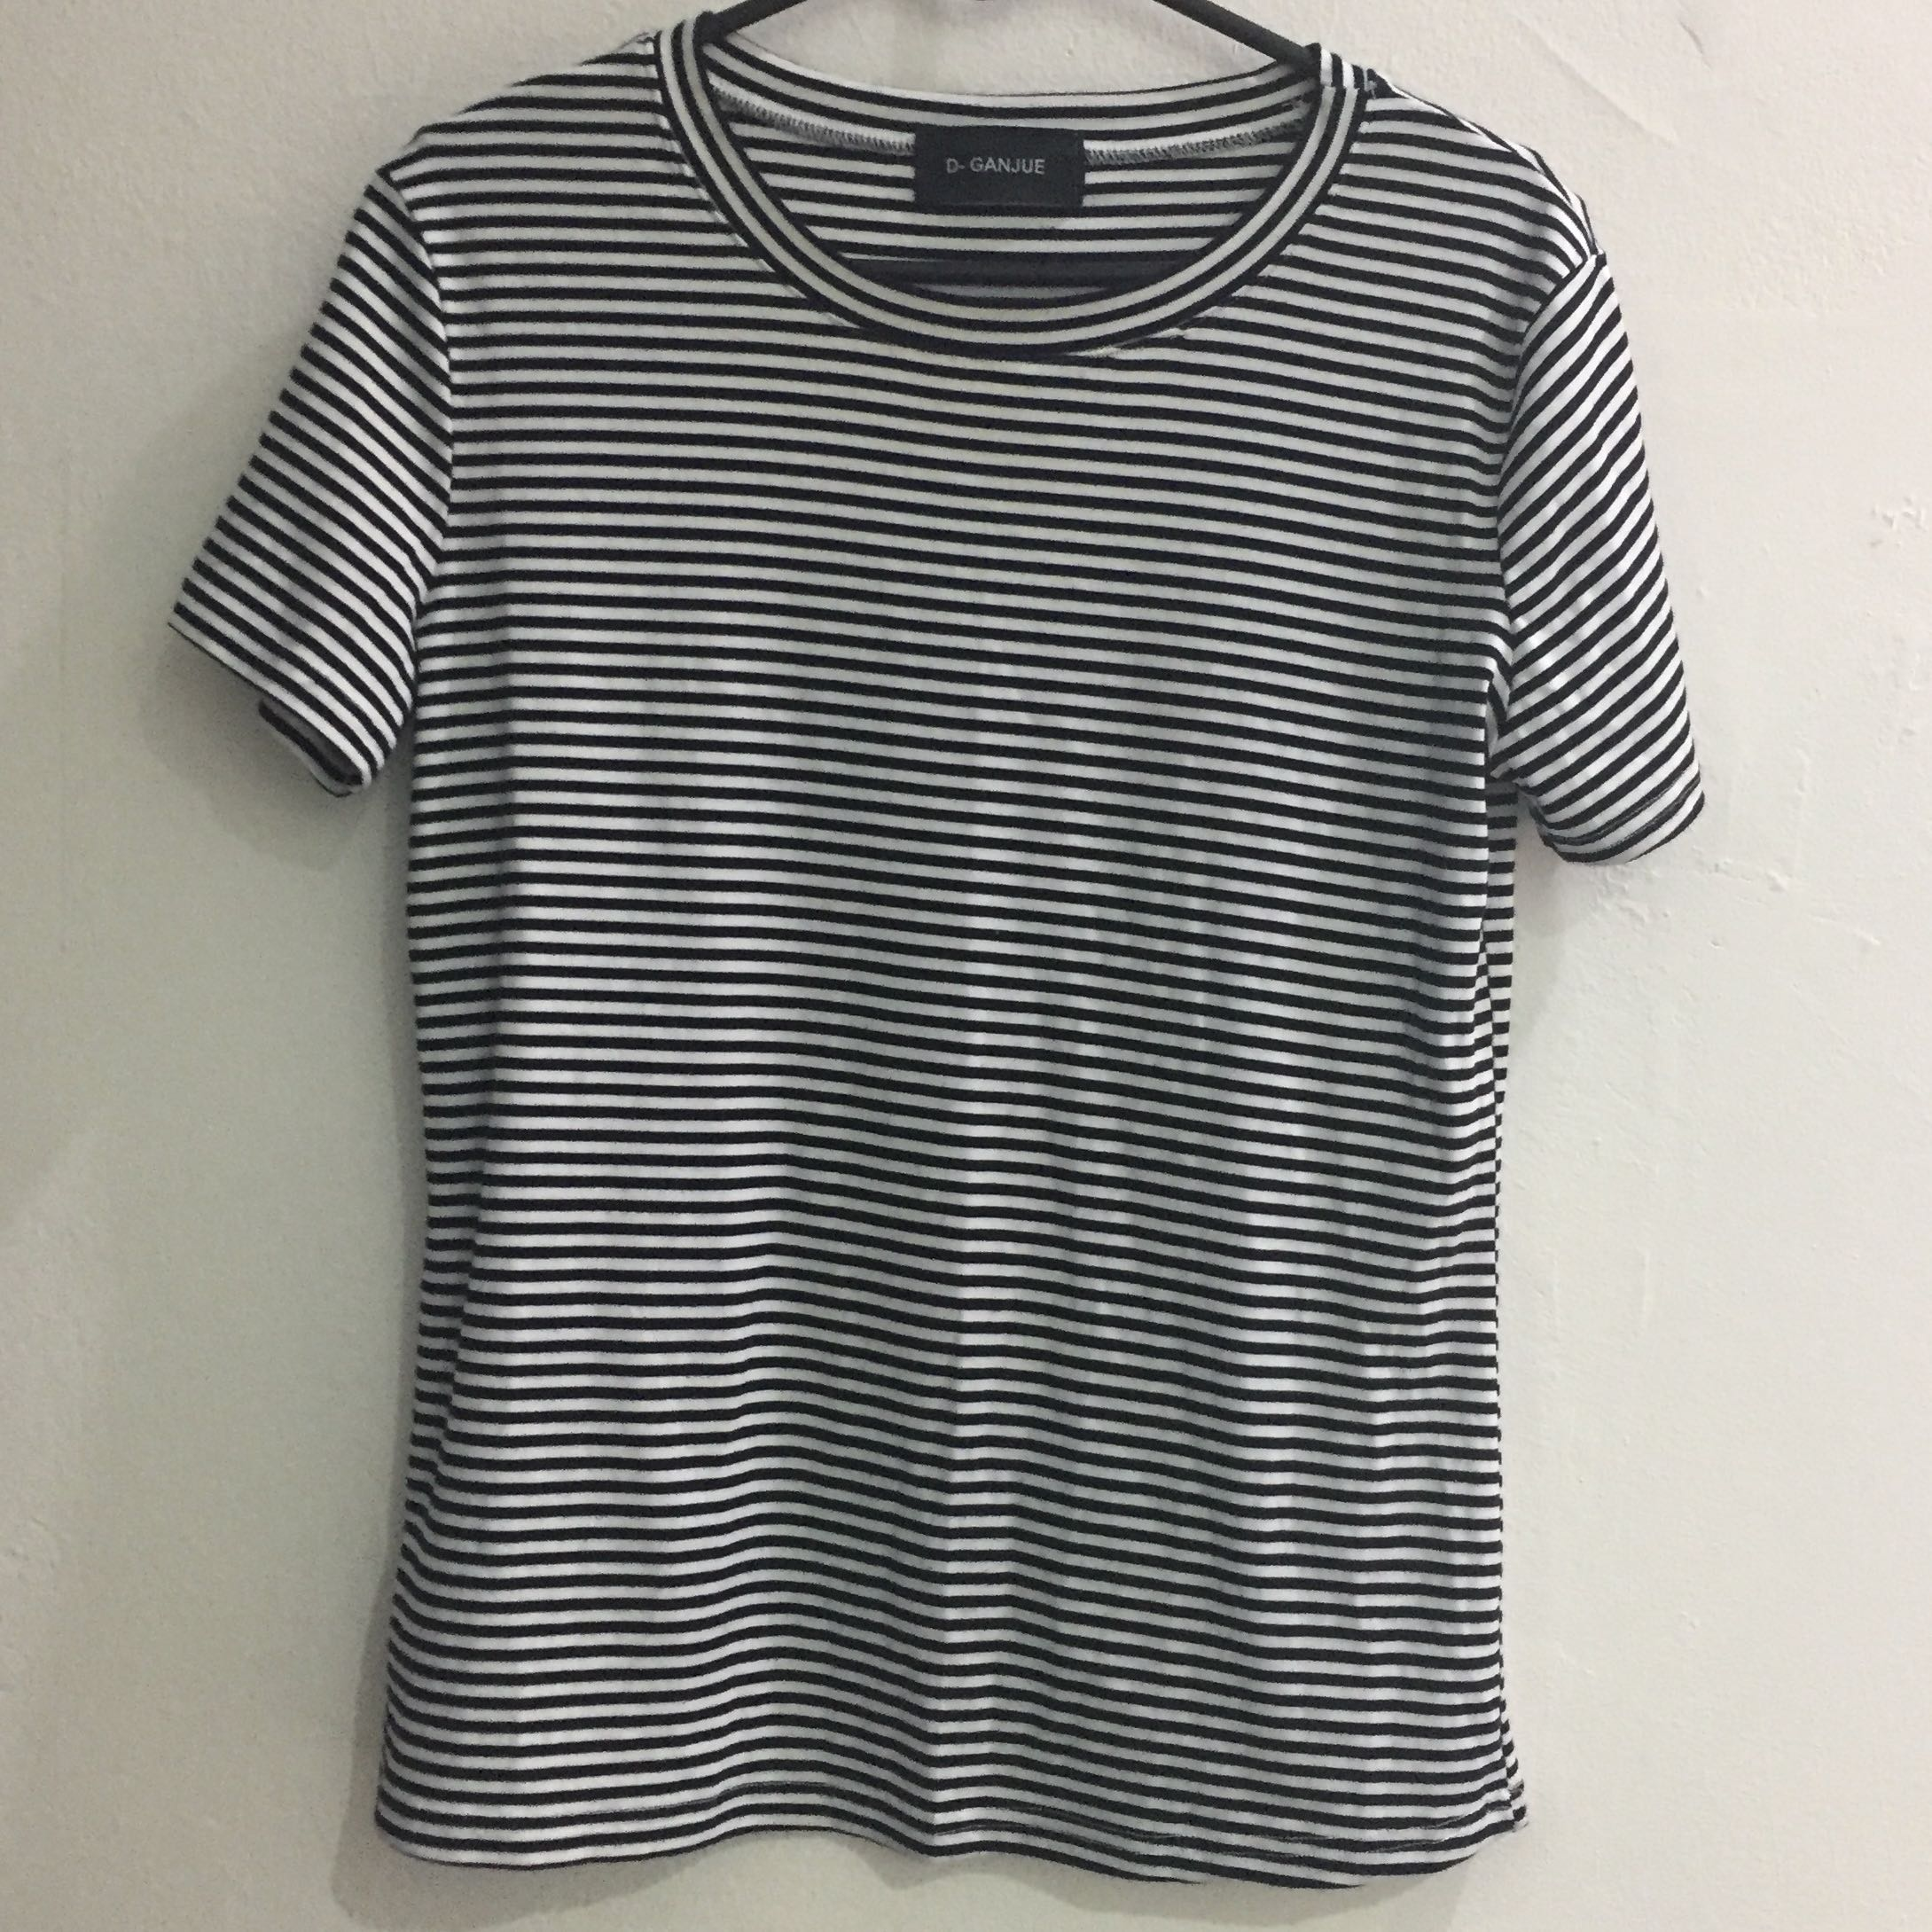 Stripes Top / Tshirt